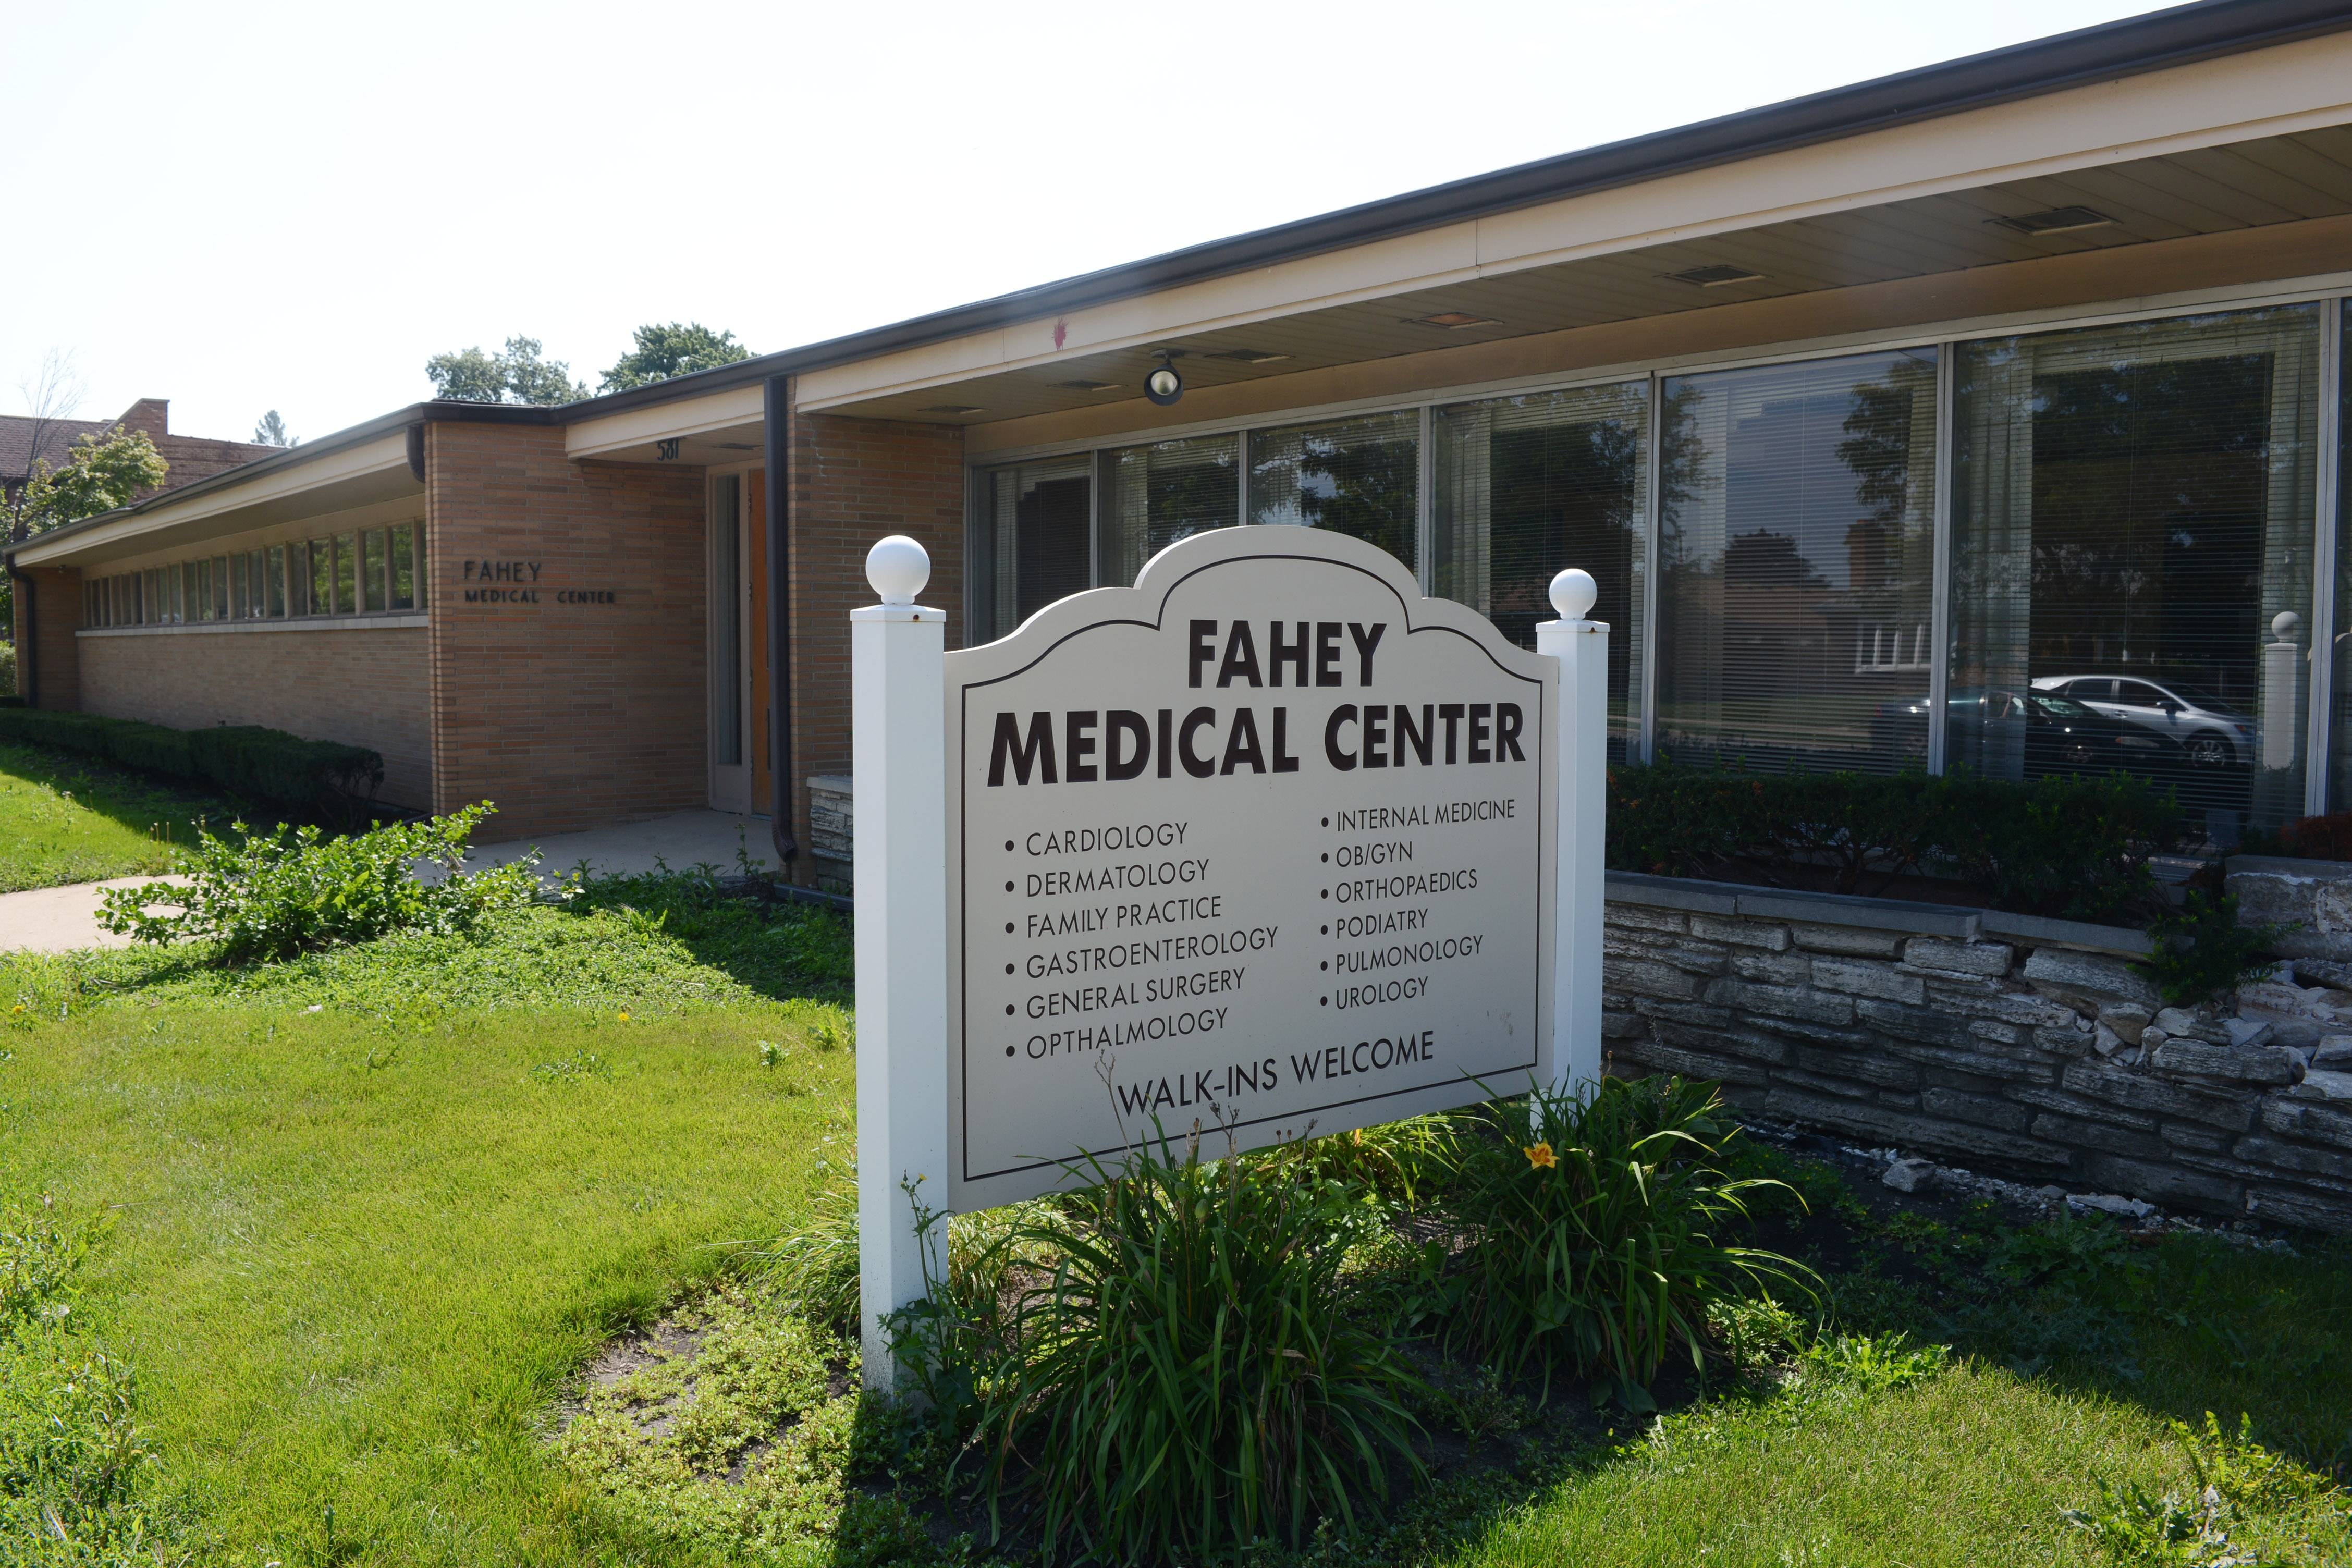 Fahey Medical Center In Des Plaines Closes Due To Foreclosure